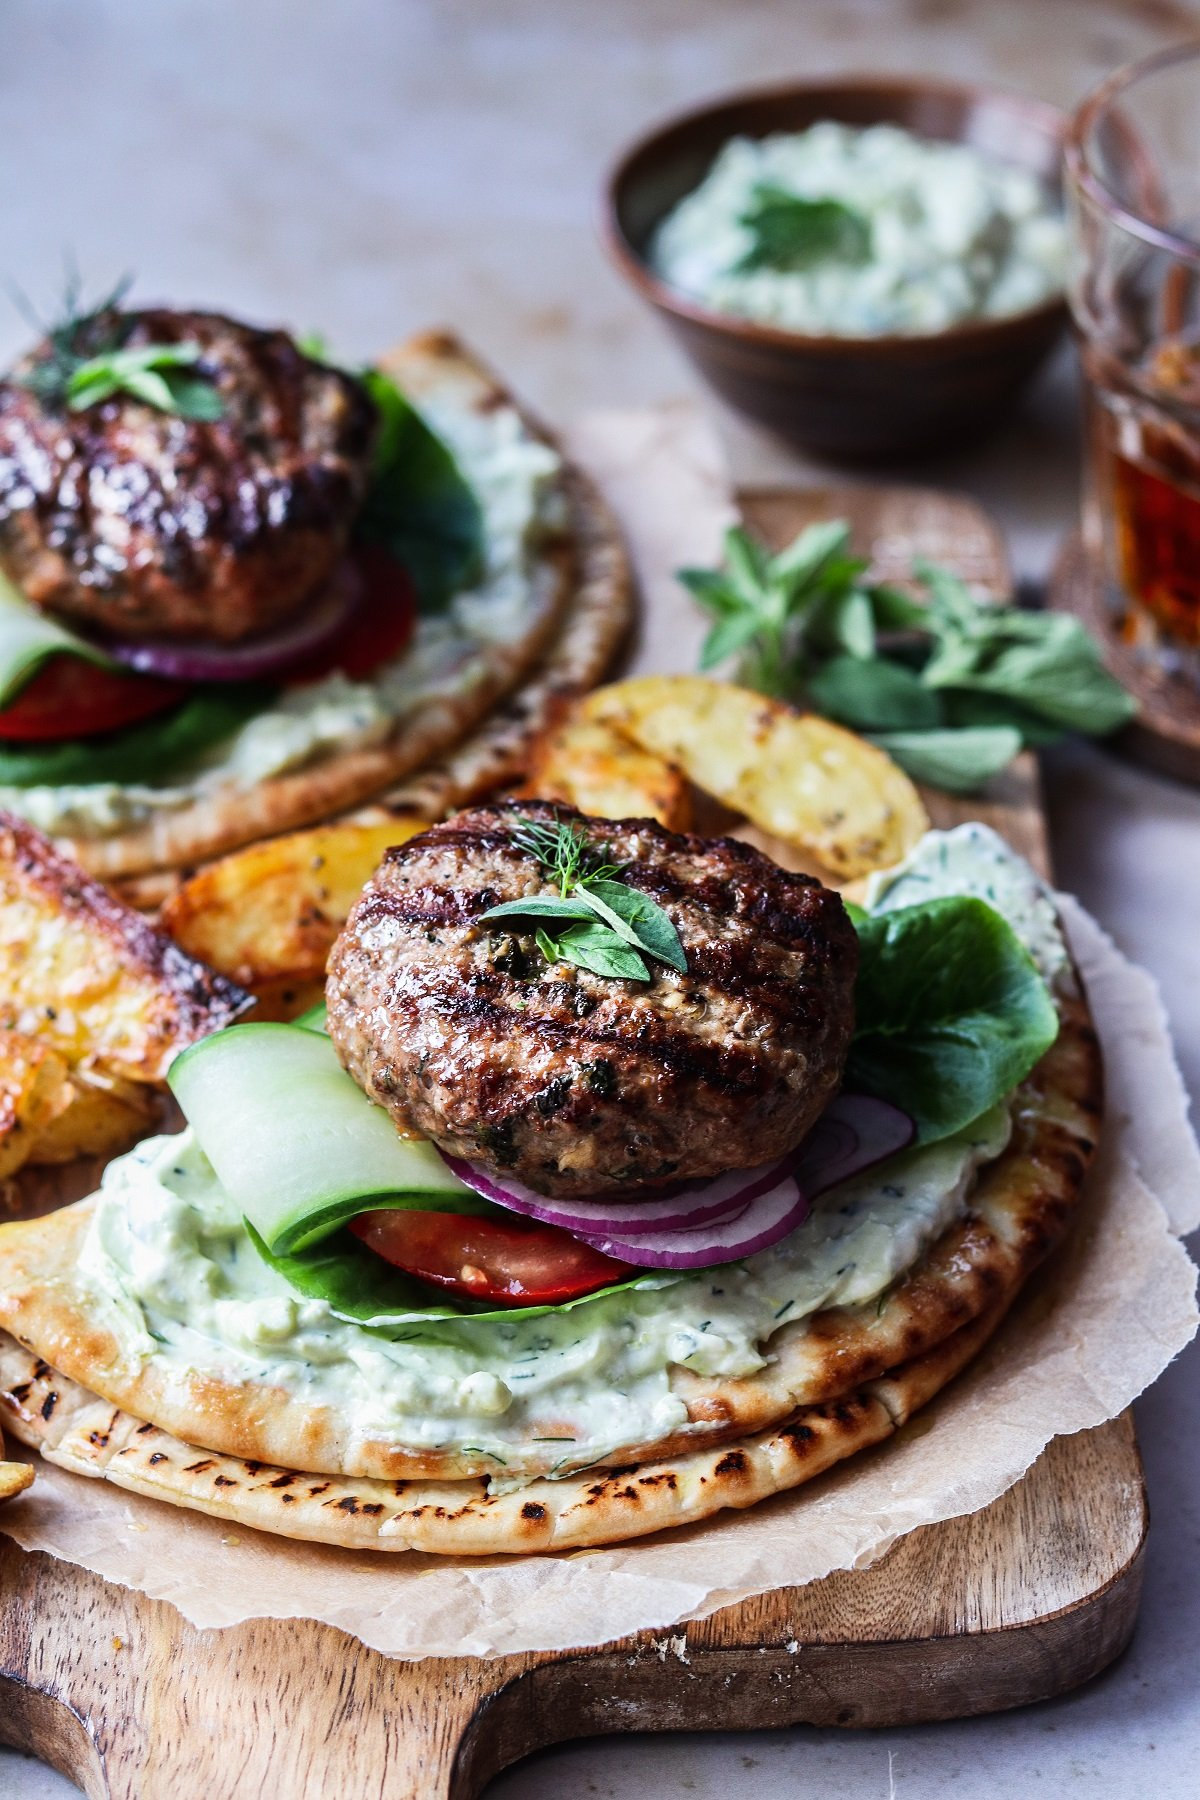 Greek lamb burgers served on wooden board with a glass of lager.